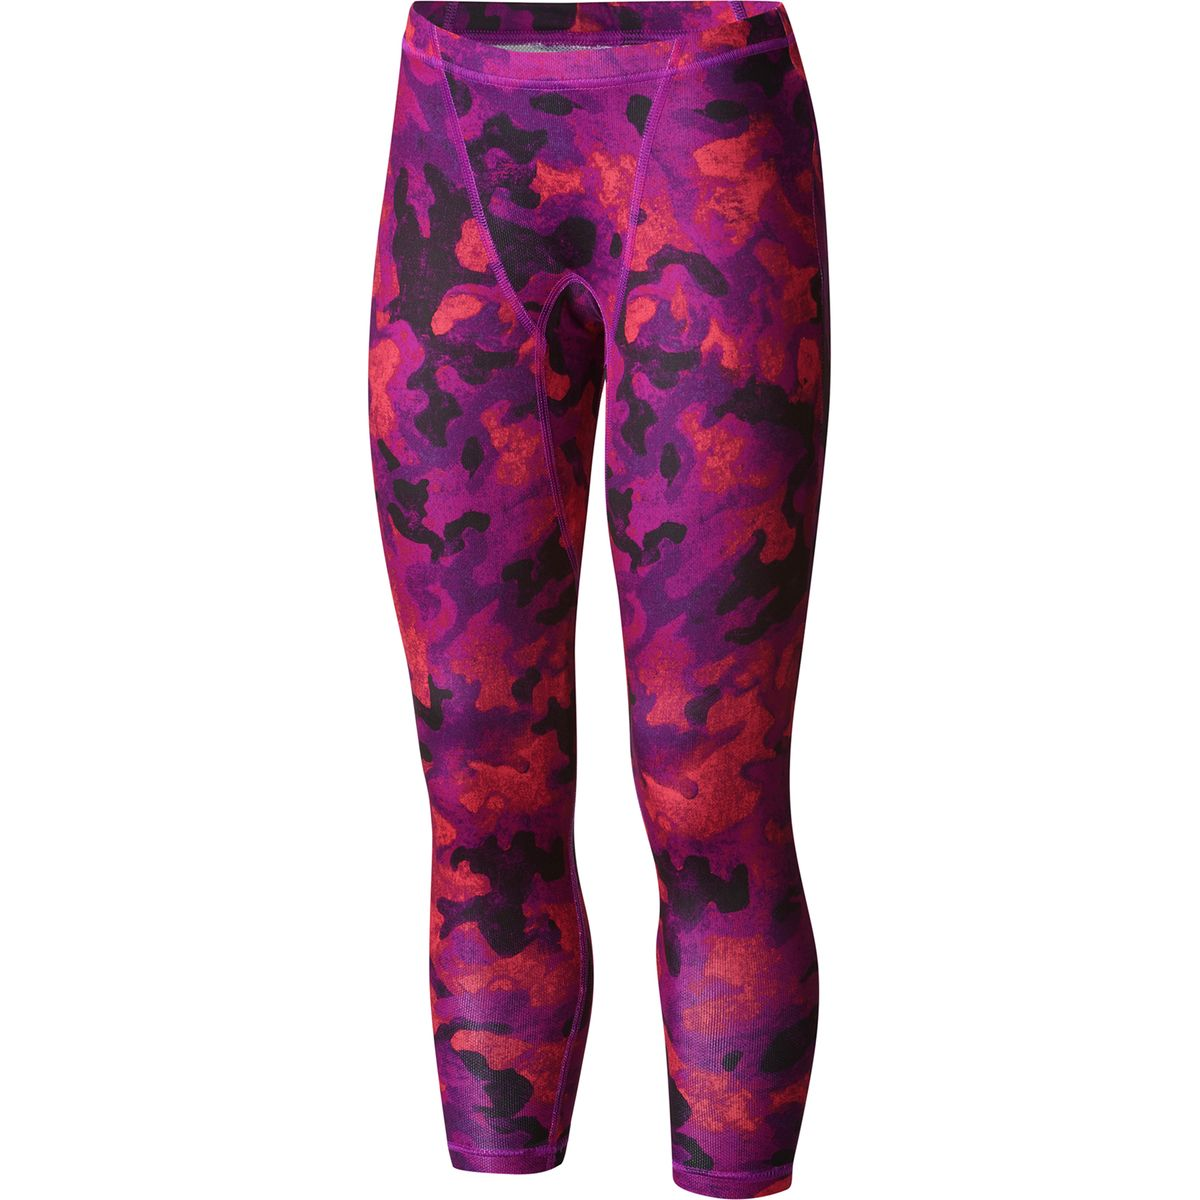 Columbia Midweight Printed Baselayer Tight - Girls